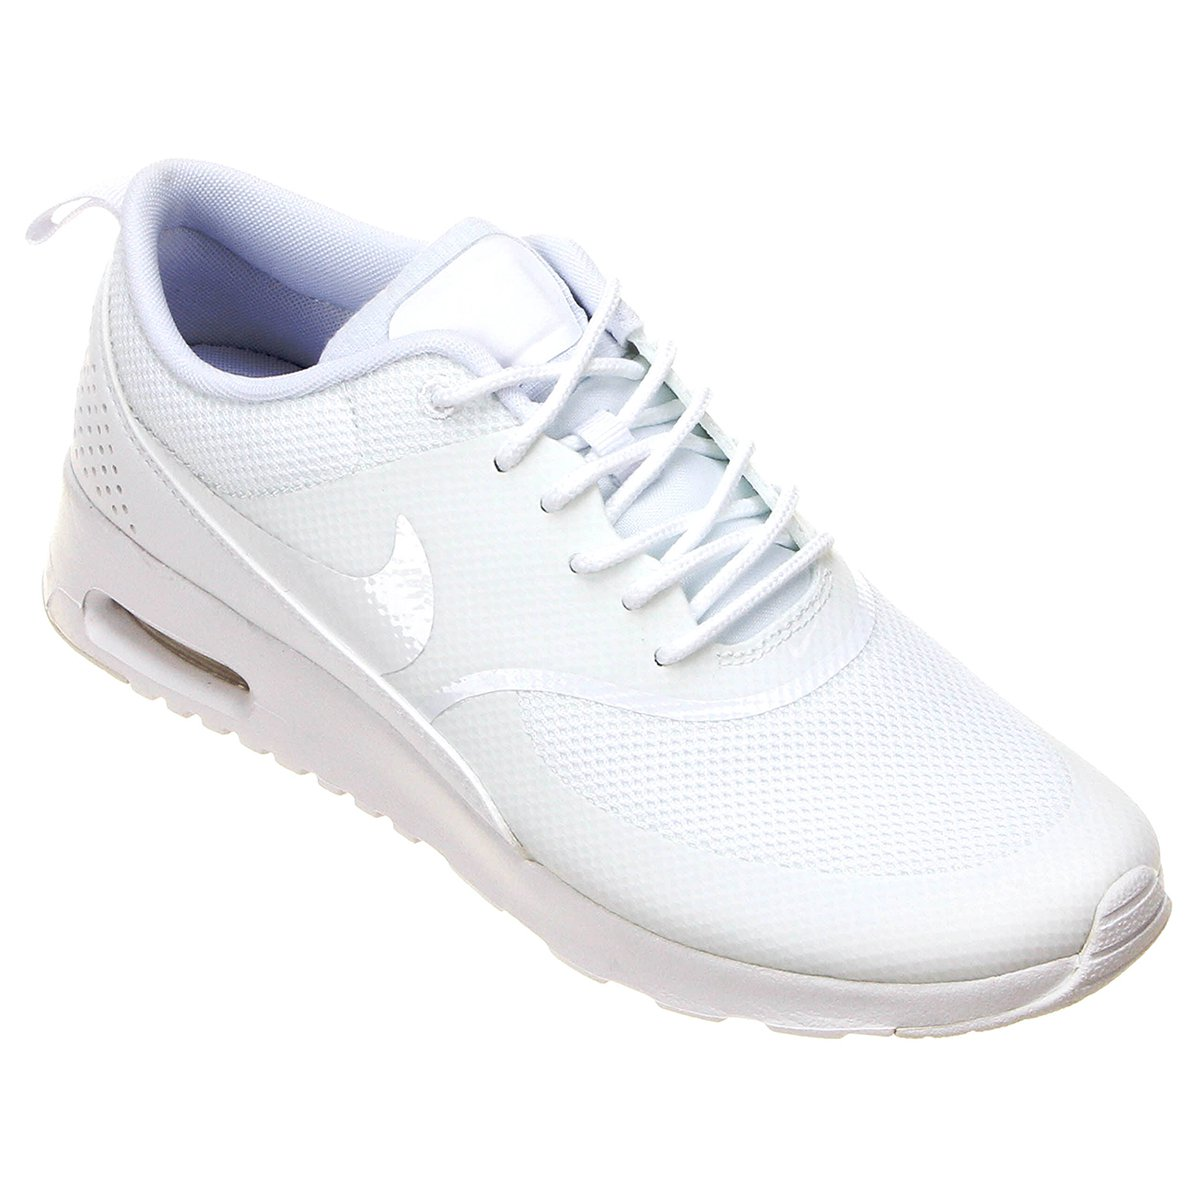 be563a1e93 ... mulher branco 350021zfr 4c93e 7bd26 best price tênis nike air max thea  compre agora netshoes 0953c 3b2a6 ...